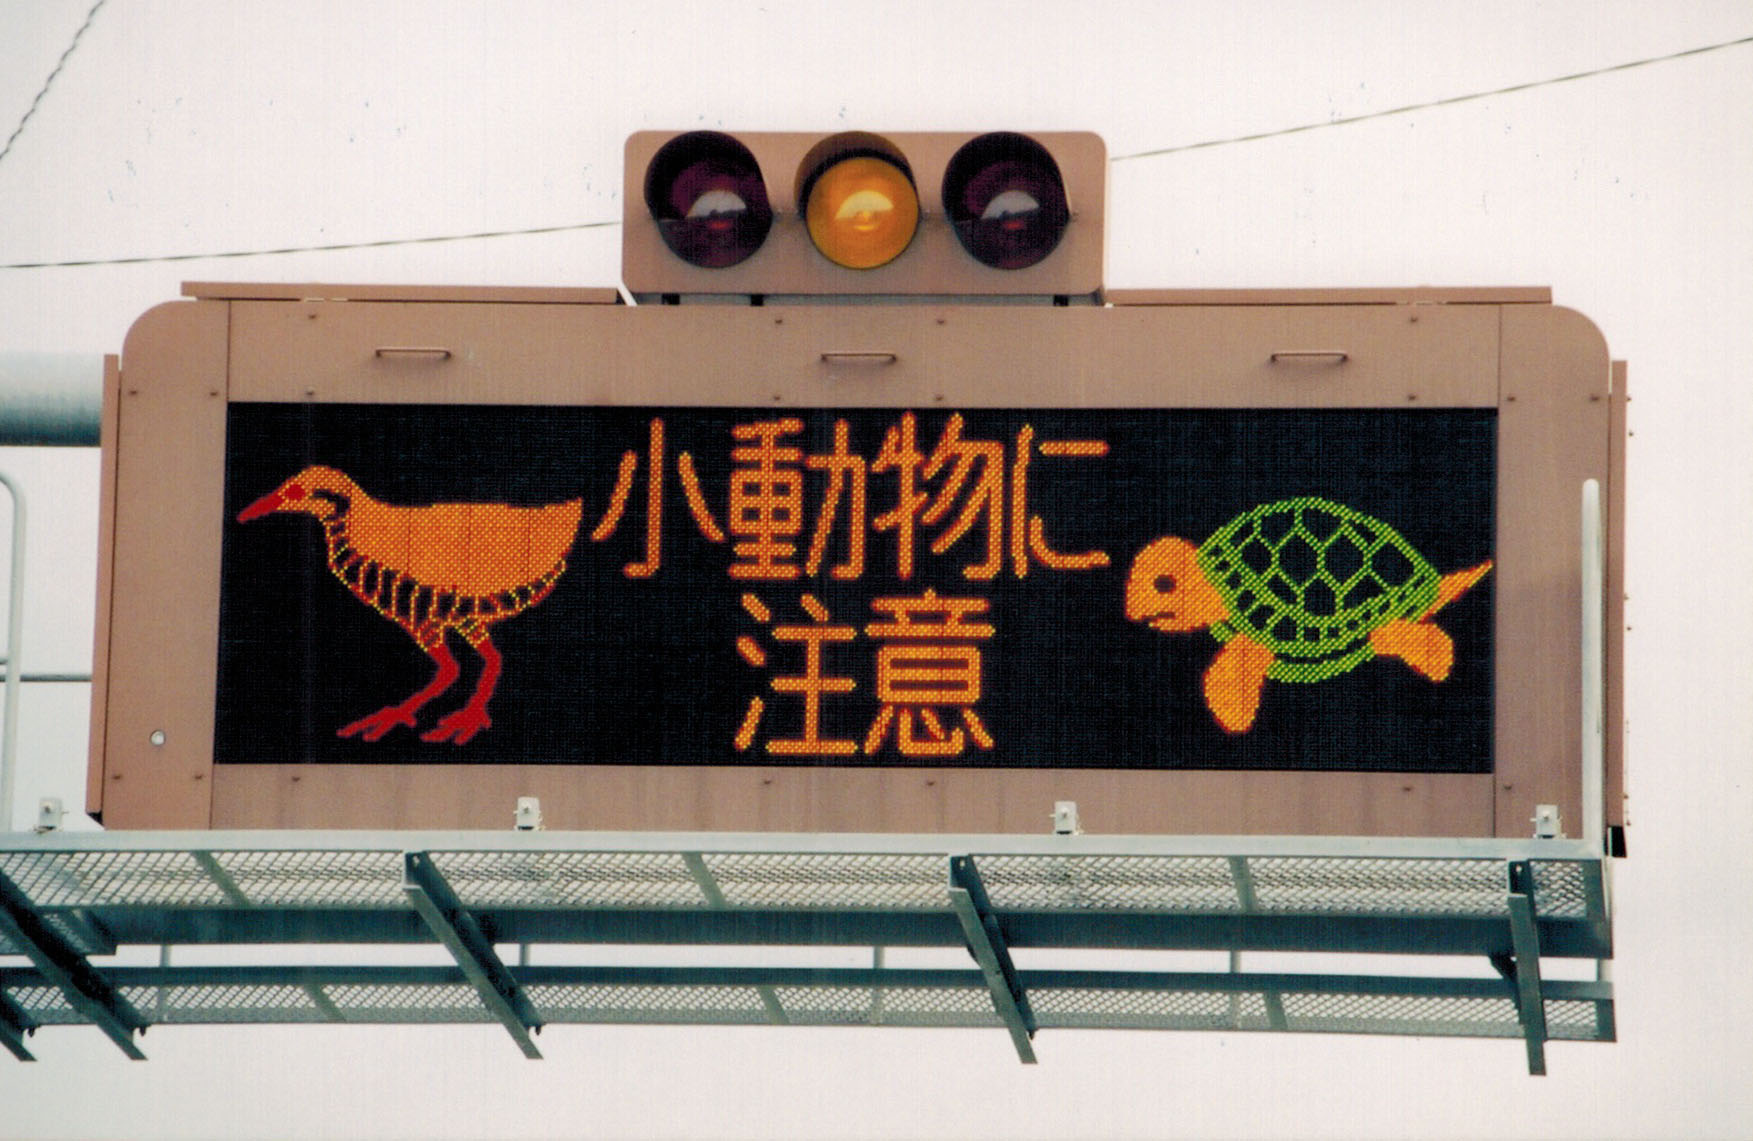 Okinawa rail sign